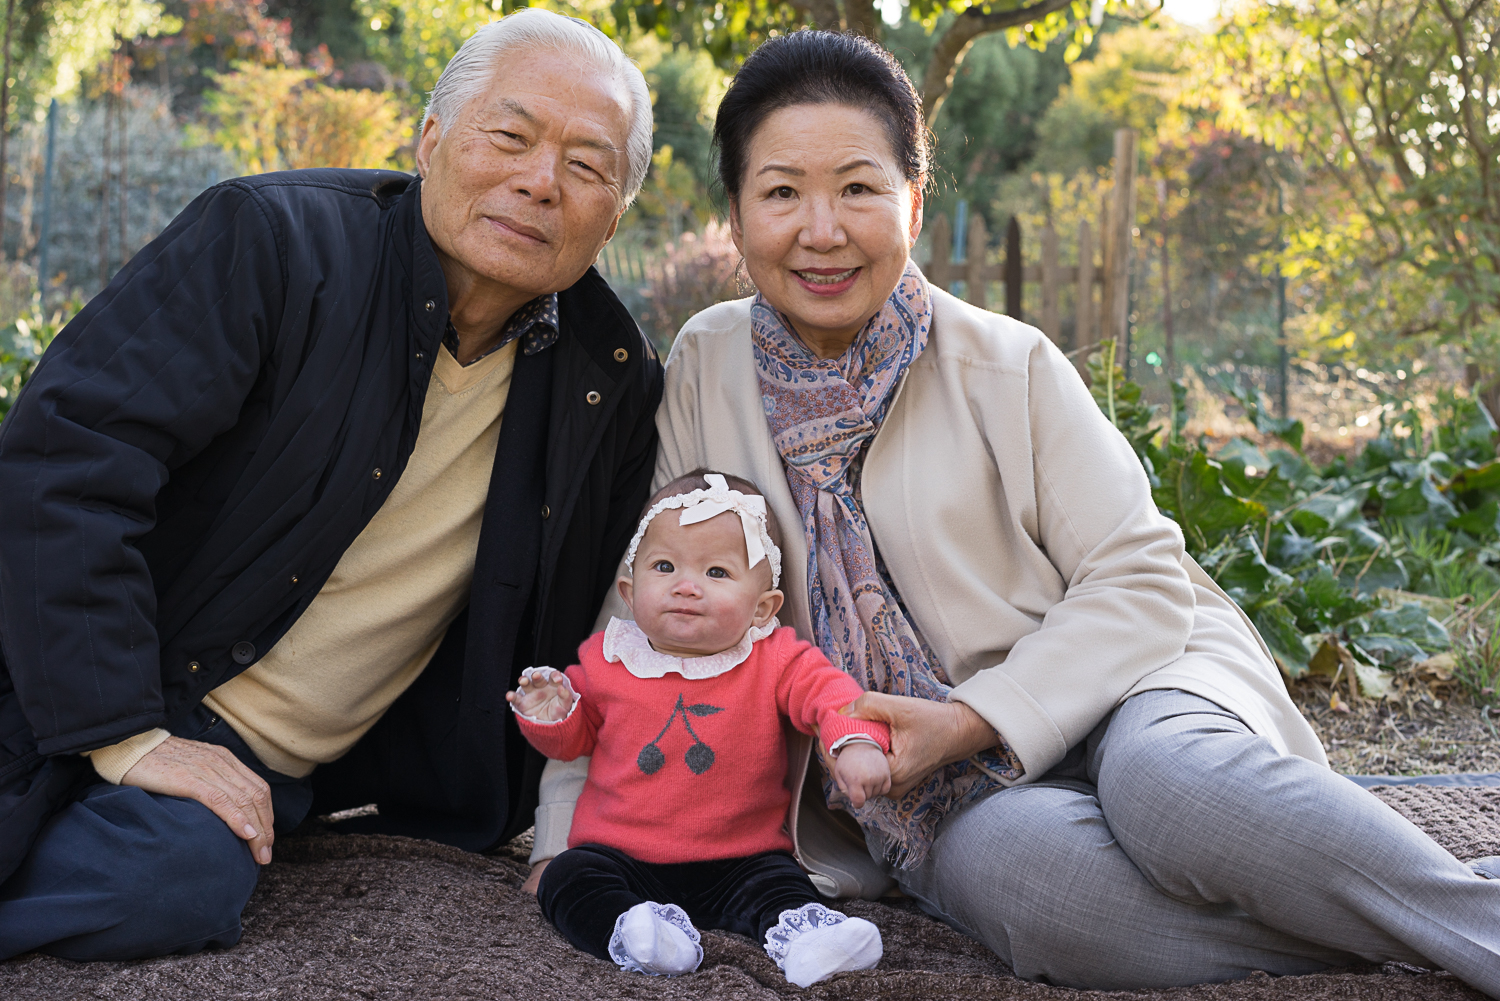 grandparents with baby - SF East Bay area family portriats